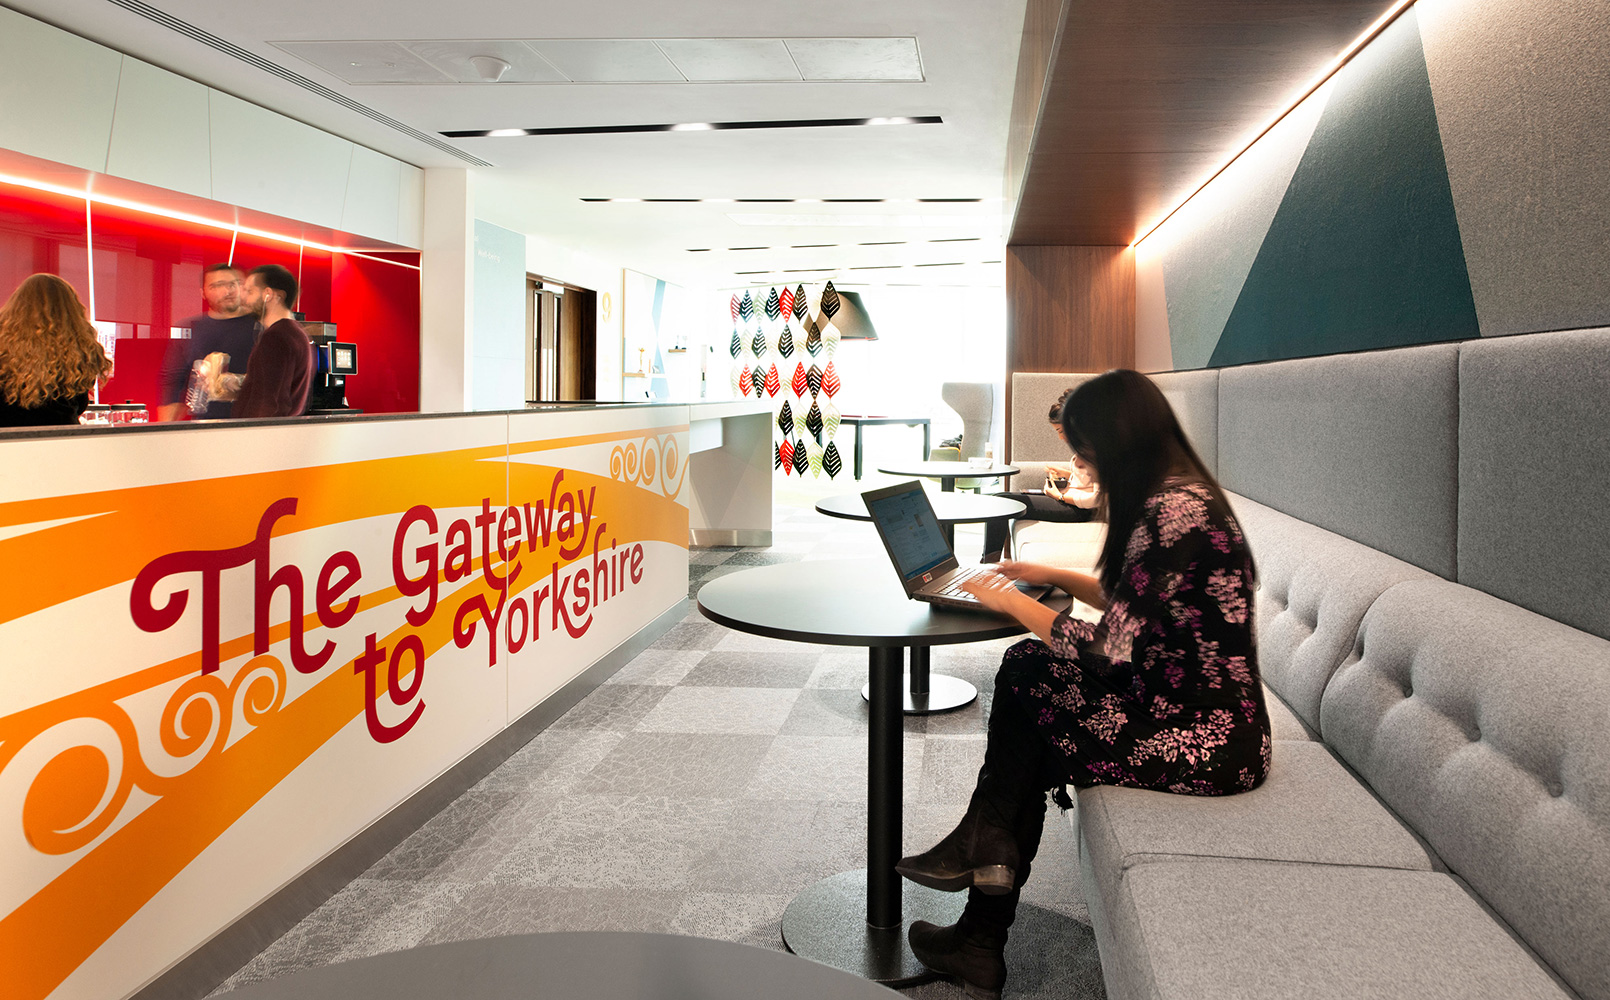 Can environmental graphics trigger pride and motivation